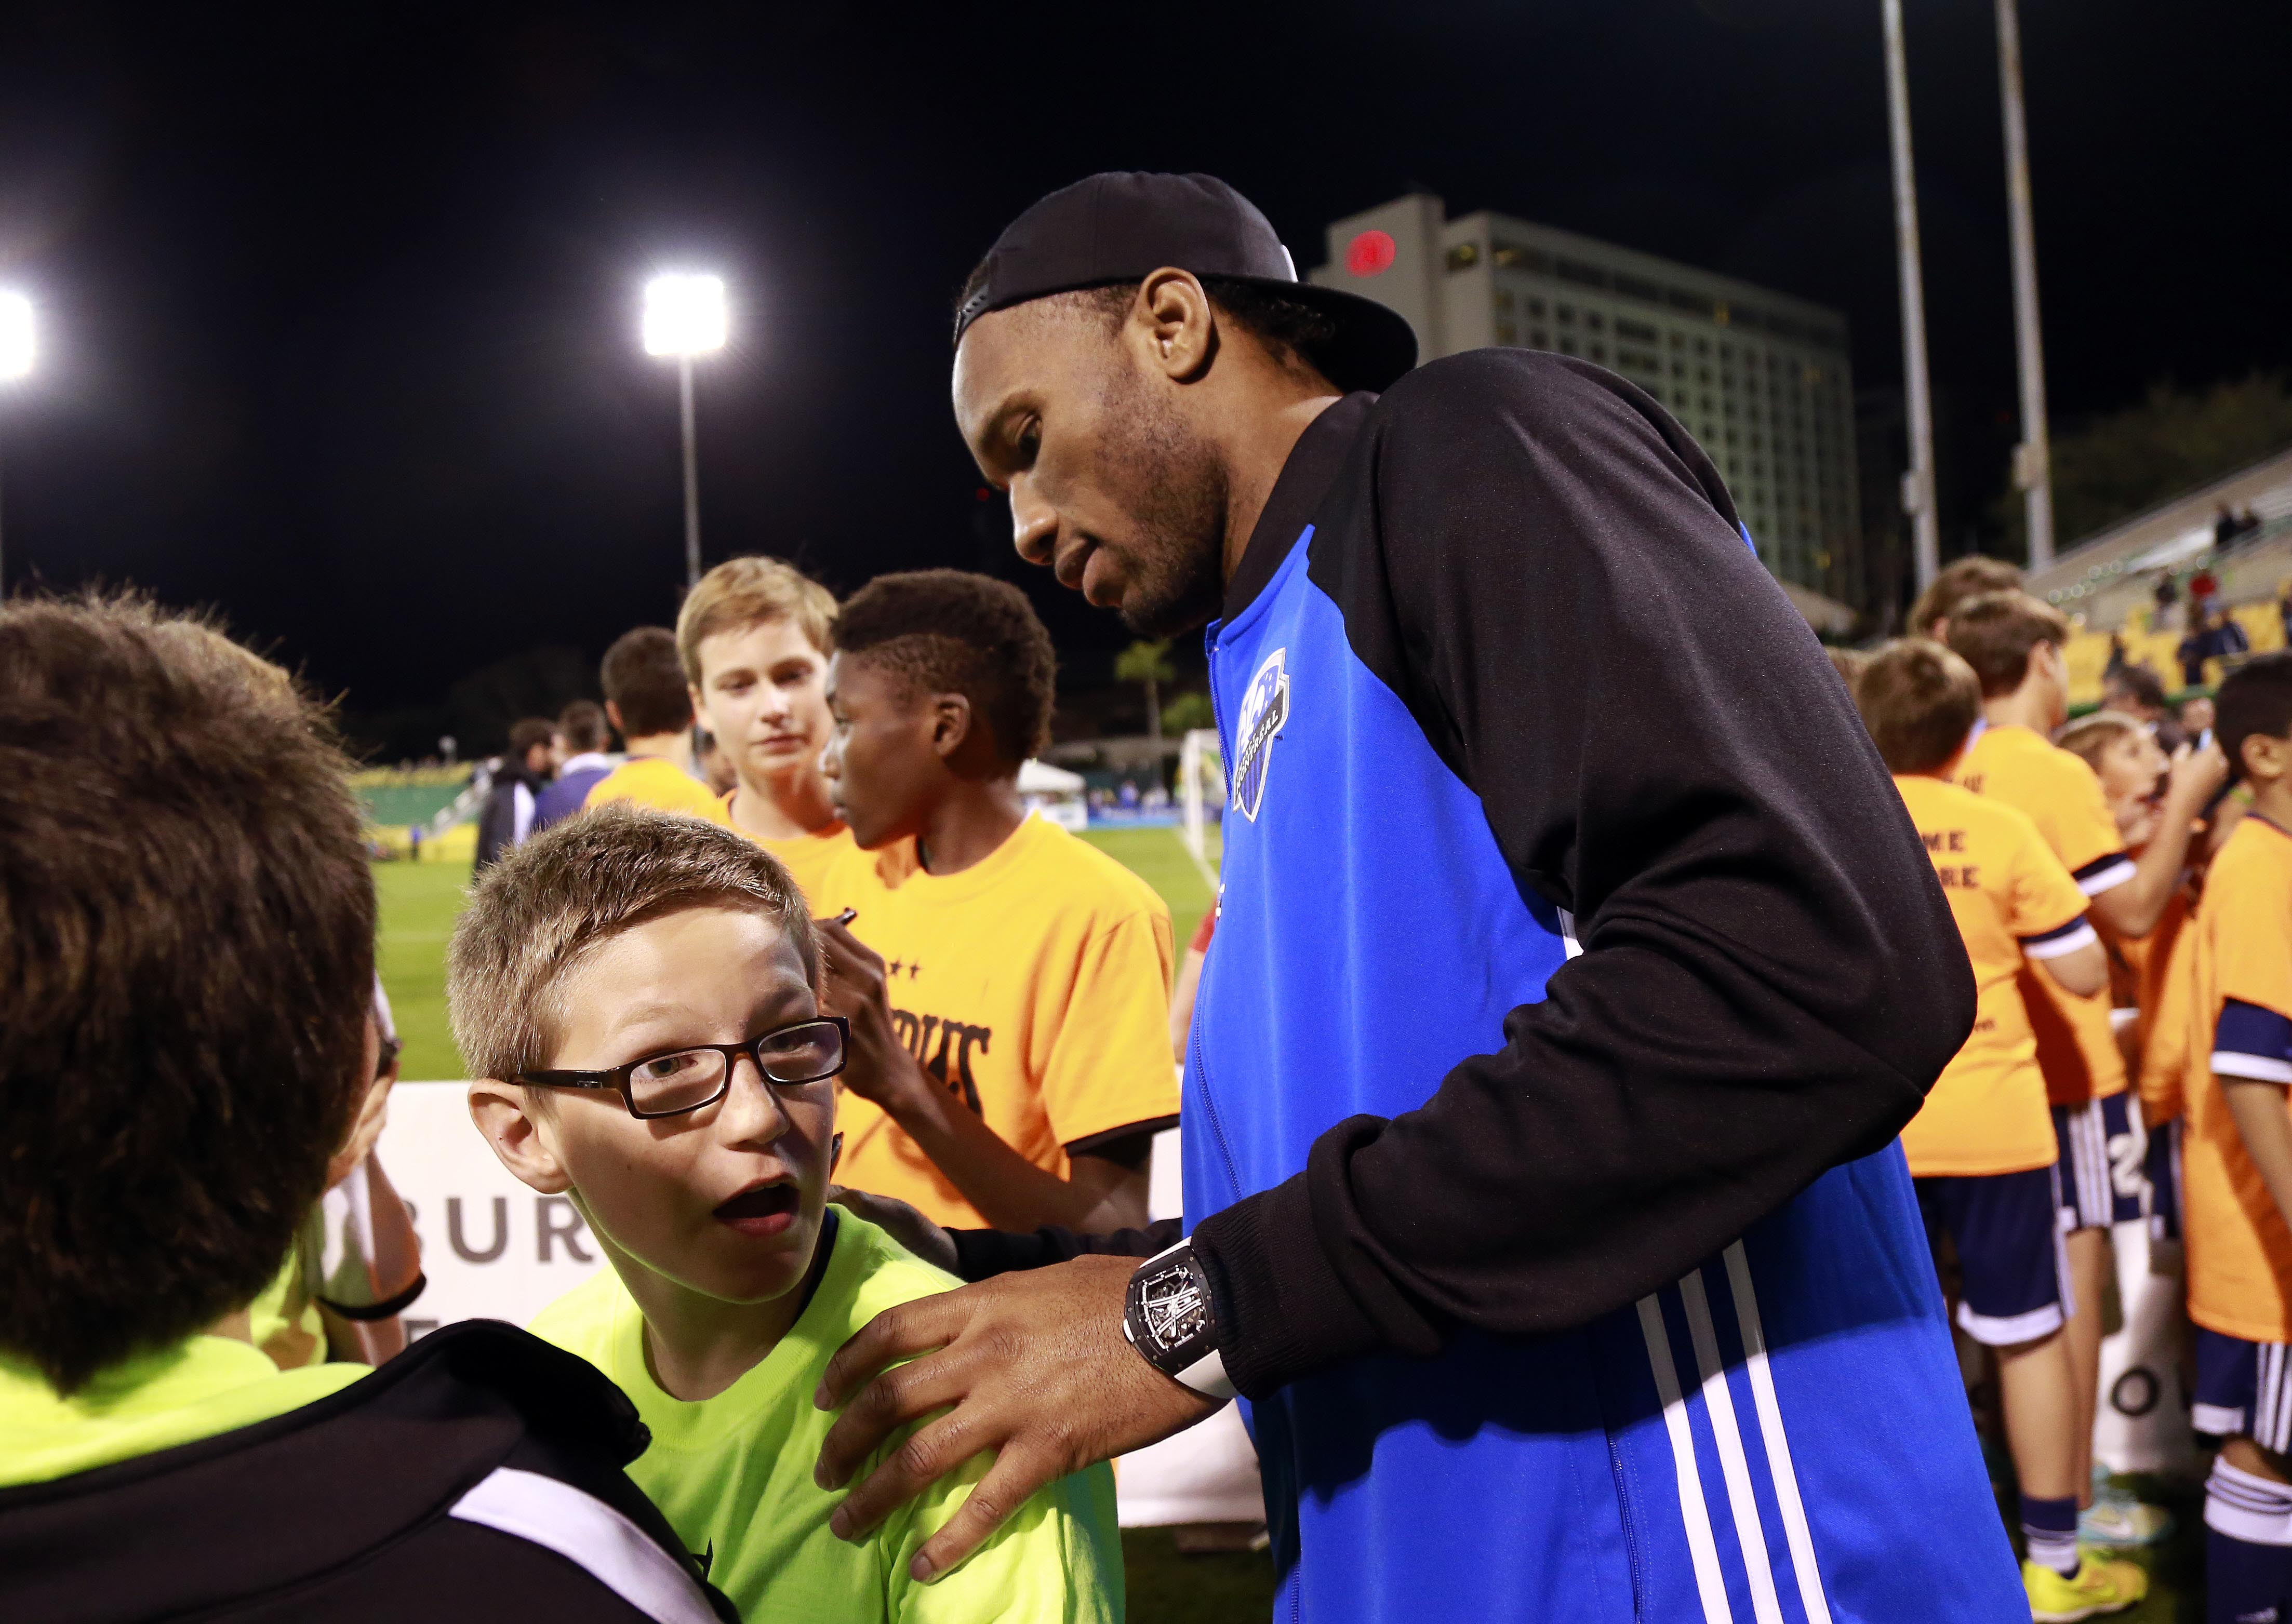 Montreal Impact forward Didier Drogba signs autographs after the game against New York City FC at Al Lang Stadium.